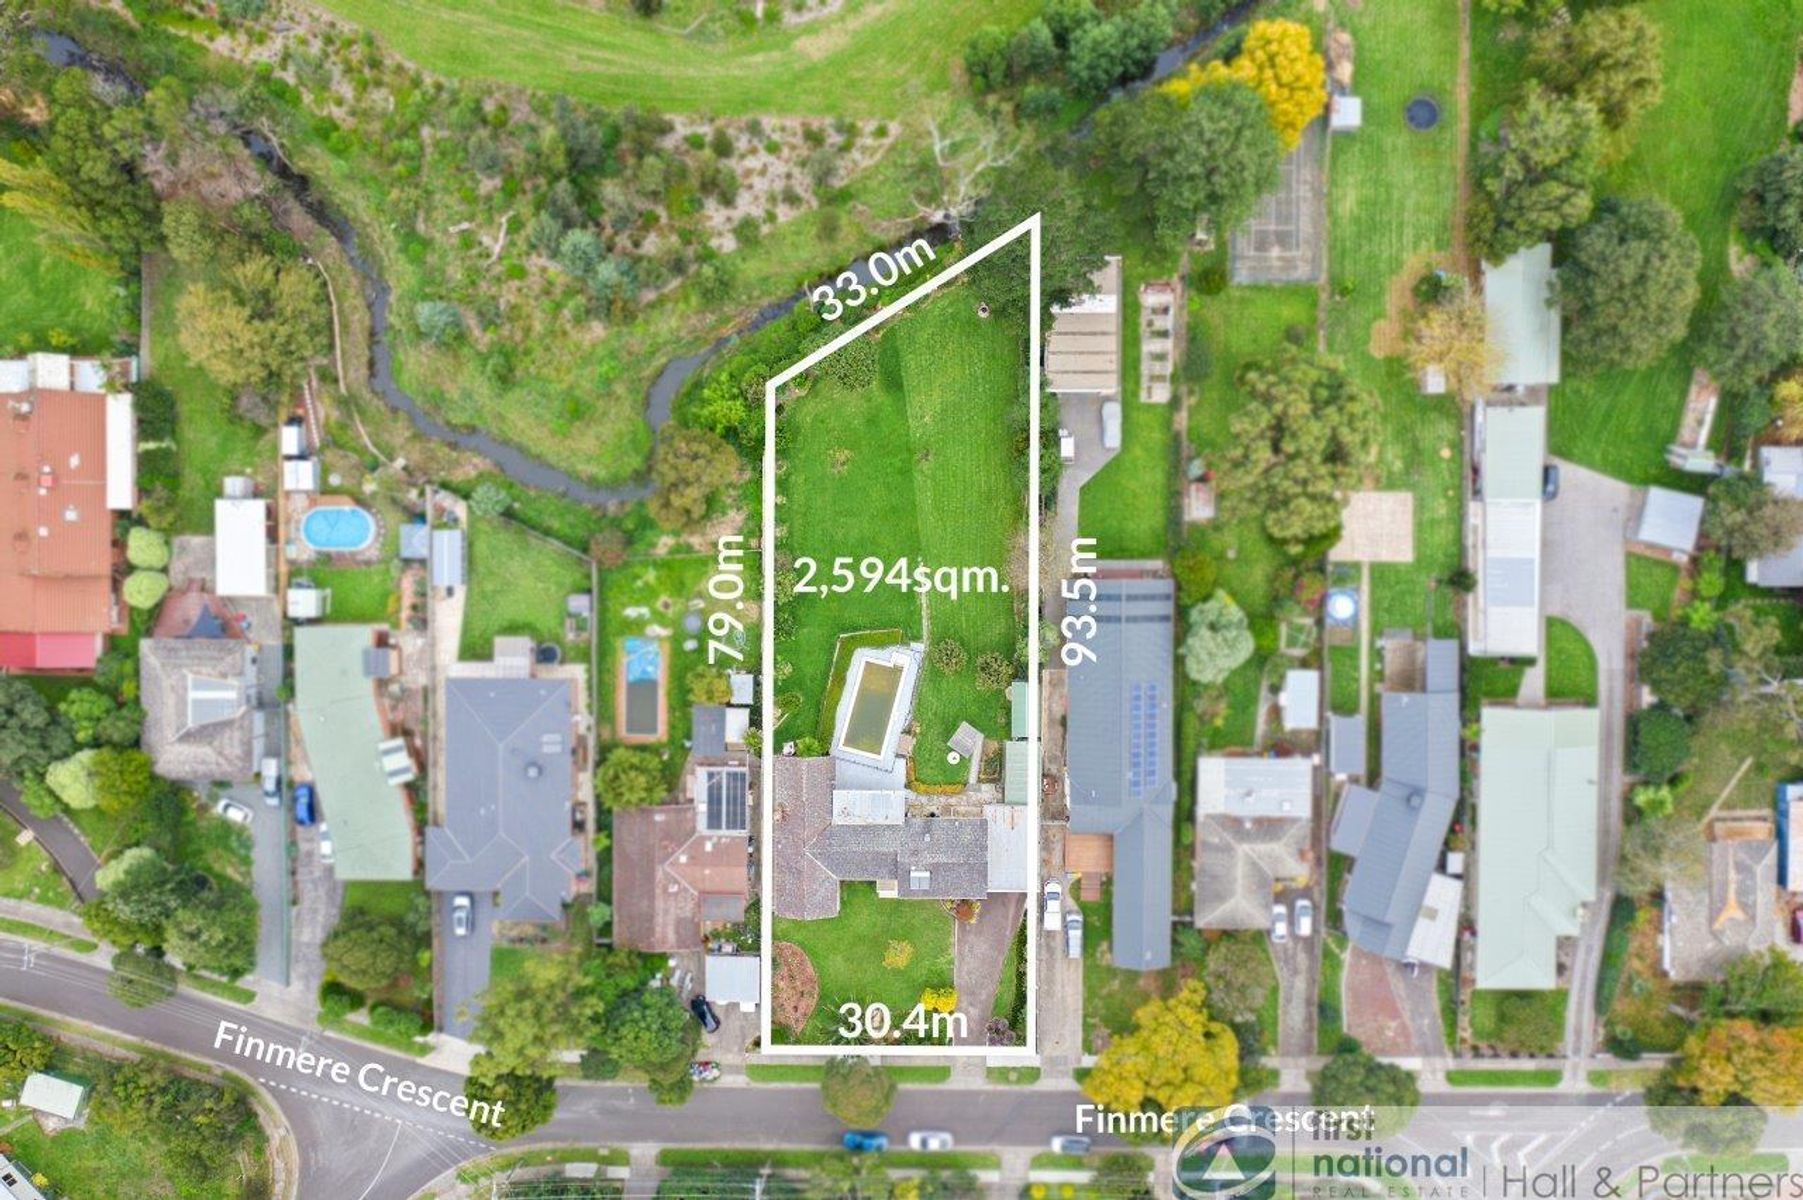 71-73 Finmere Crescent, Upper Ferntree Gully, VIC 3156